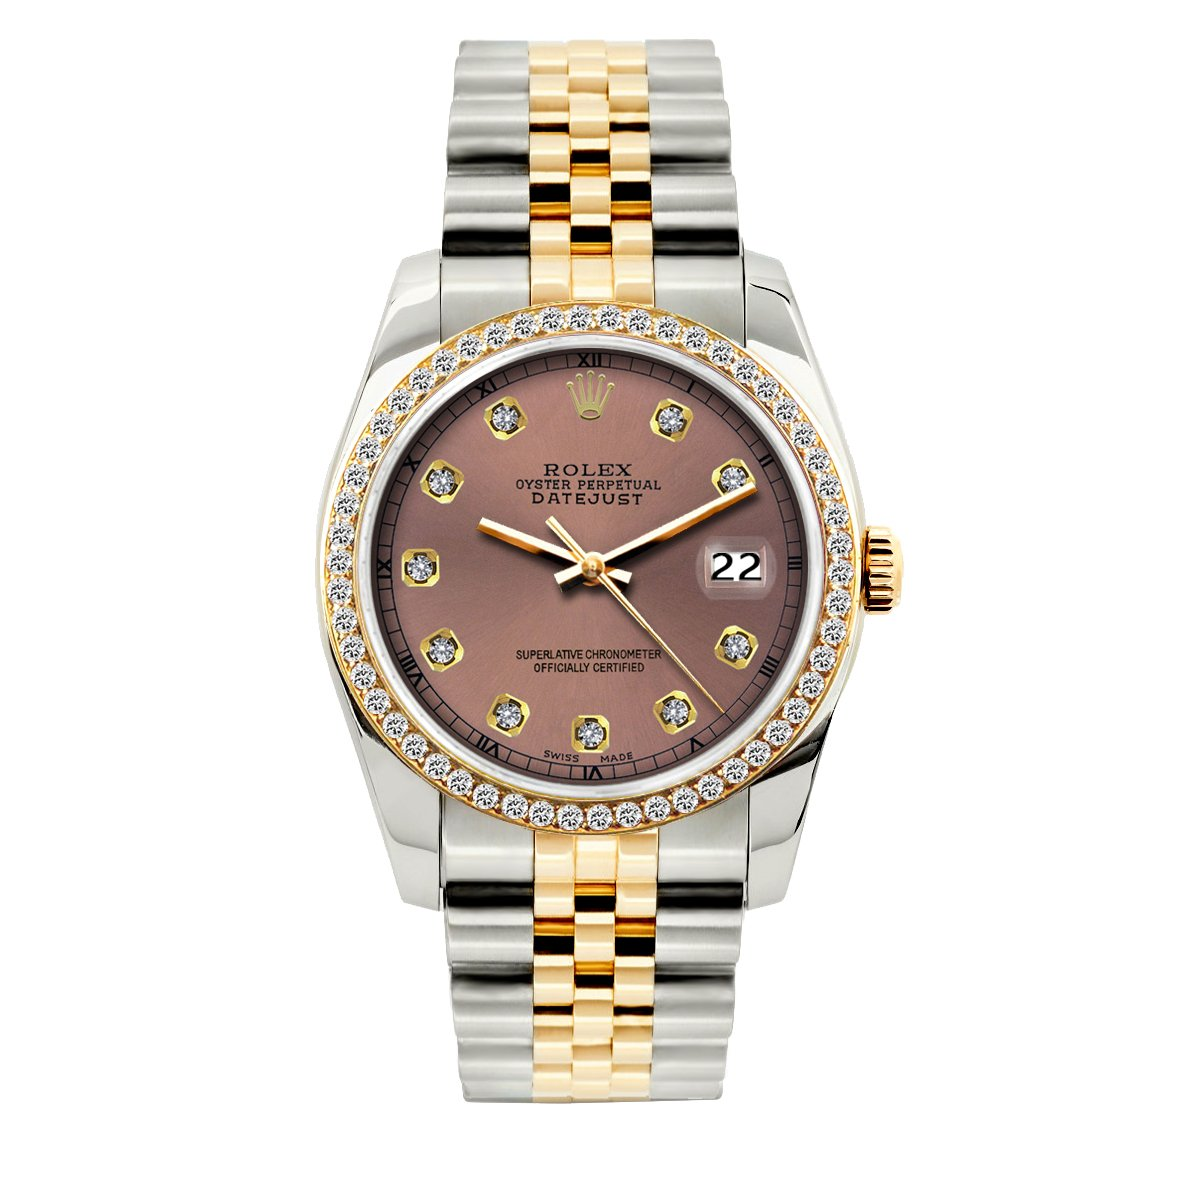 Rolex Datejust Diamond Watch, 36mm, Yellow Gold and Stainless Steel Bracelet Earthen Dial w/ Diamond Bezel